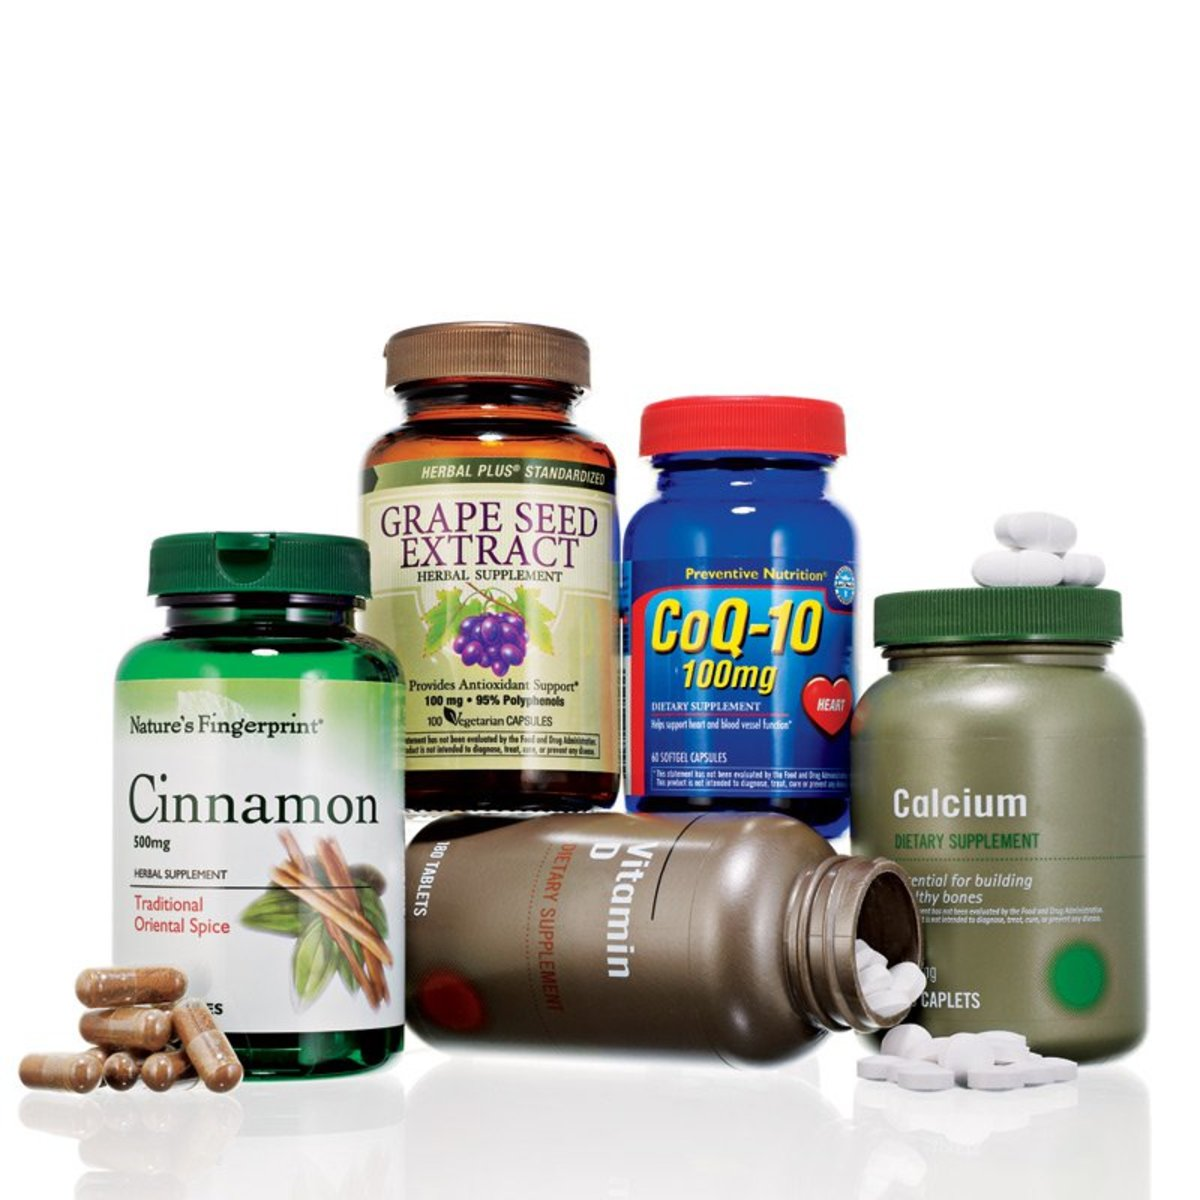 7 Best Supplements for Health and Wellness